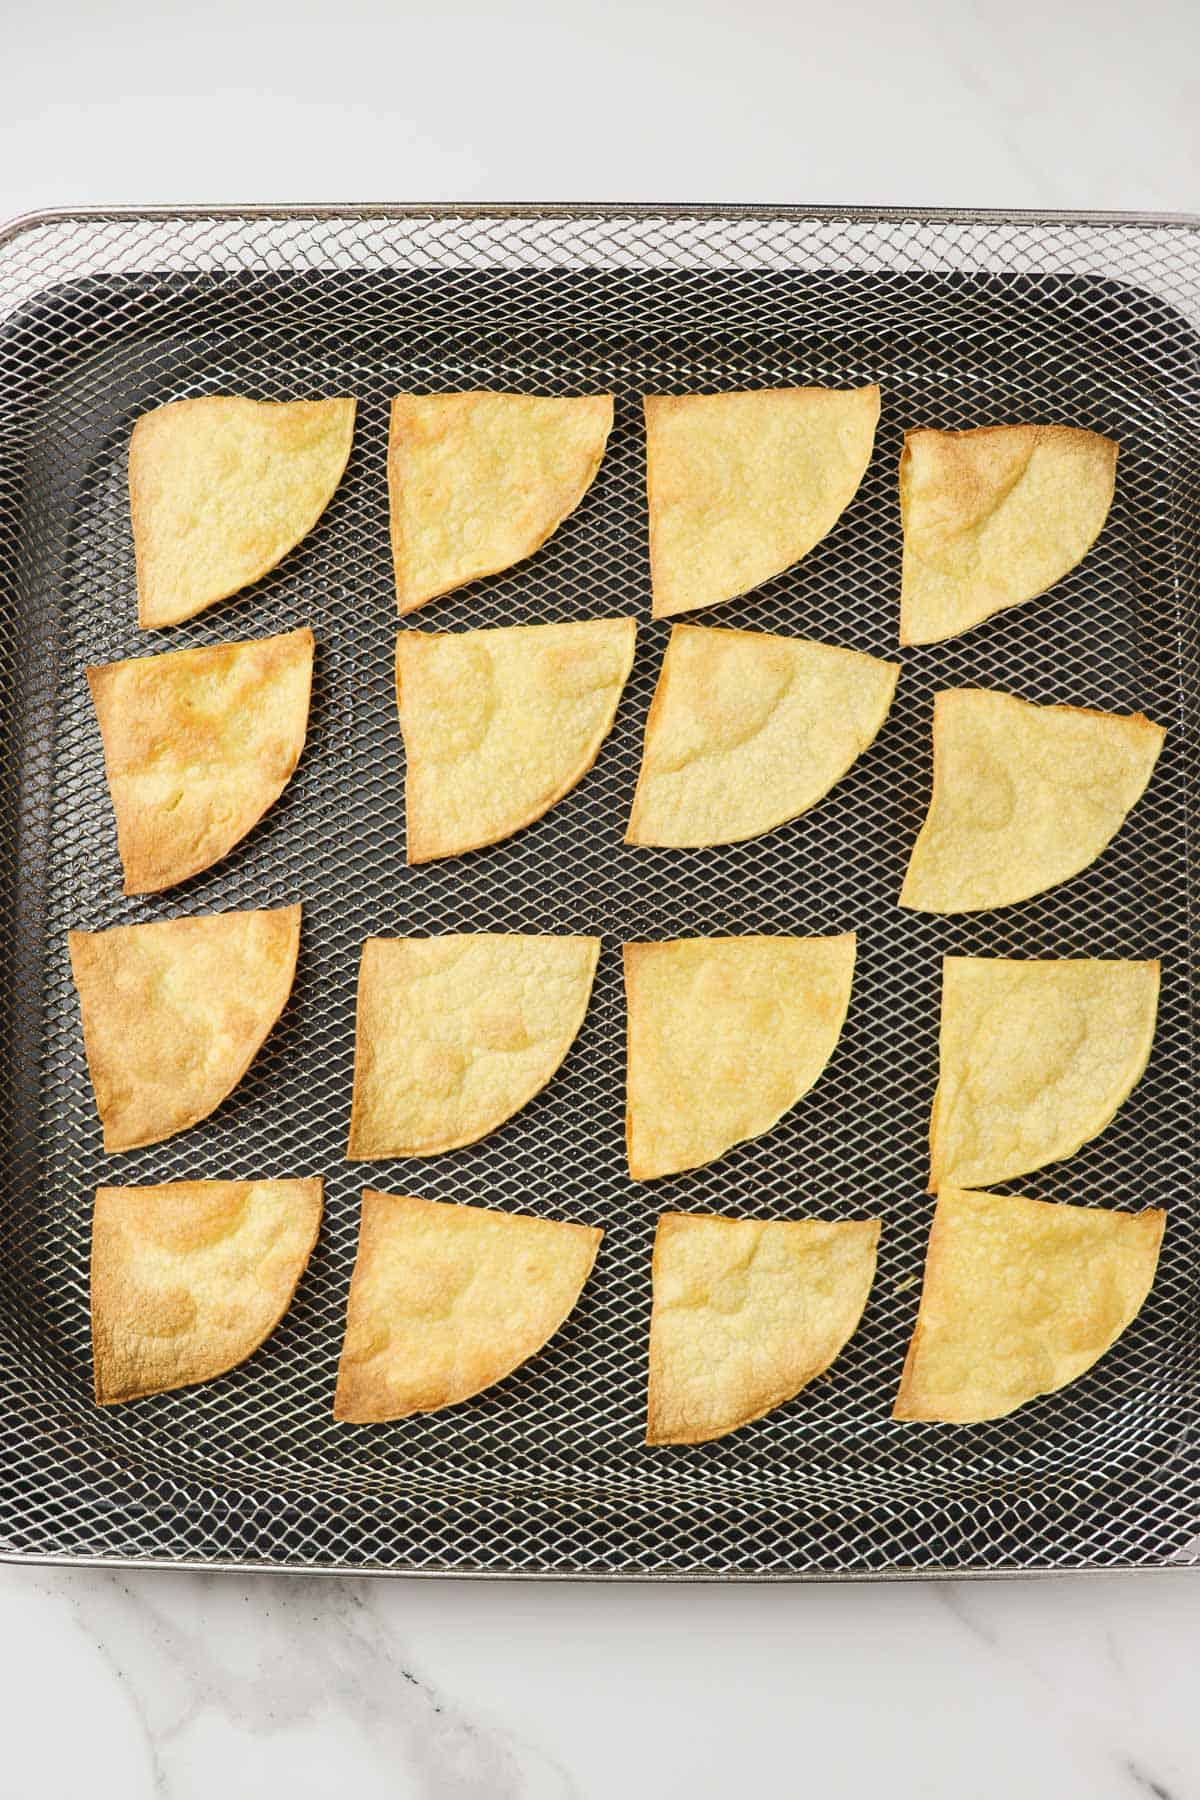 Finished air fryer tortilla chips made with corn tortillas in air fryer basket